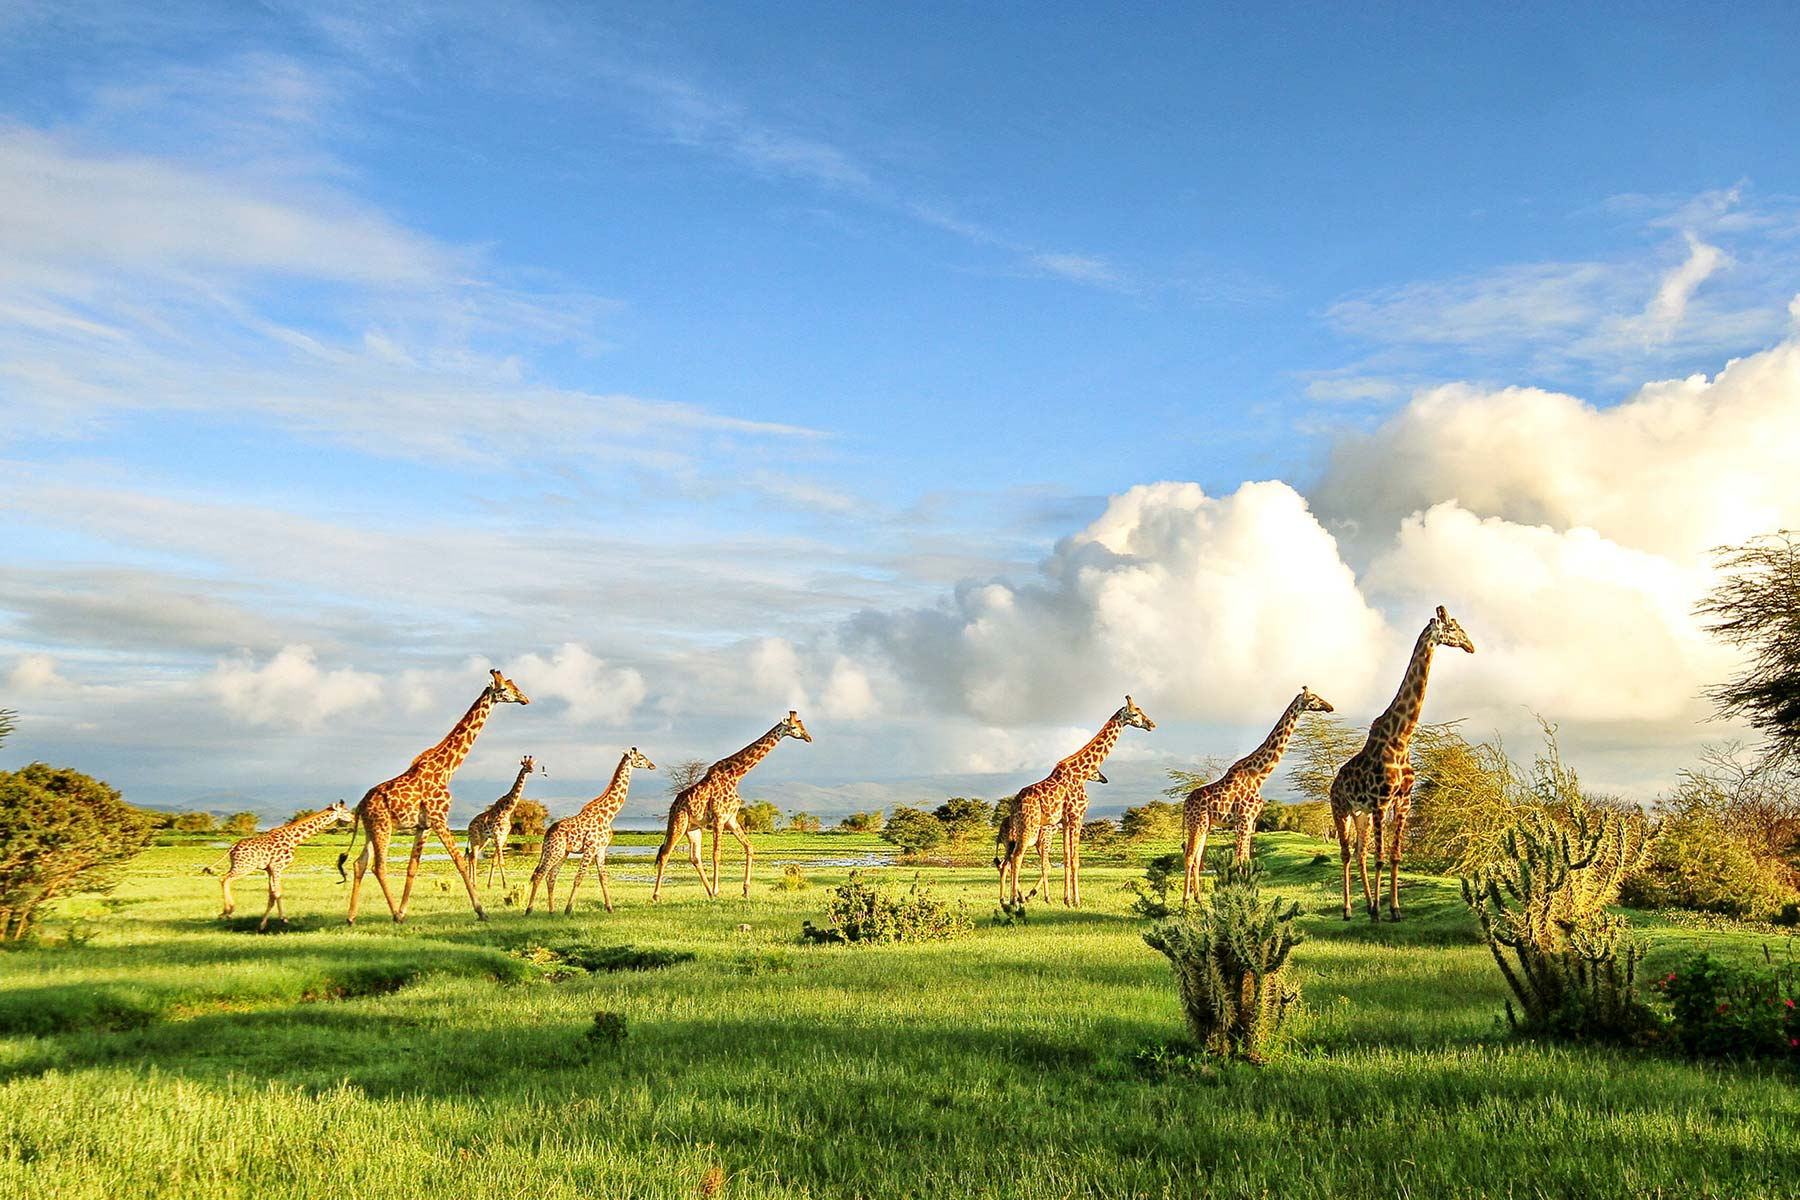 African Savanna Experience Safari (East Africa safaris)